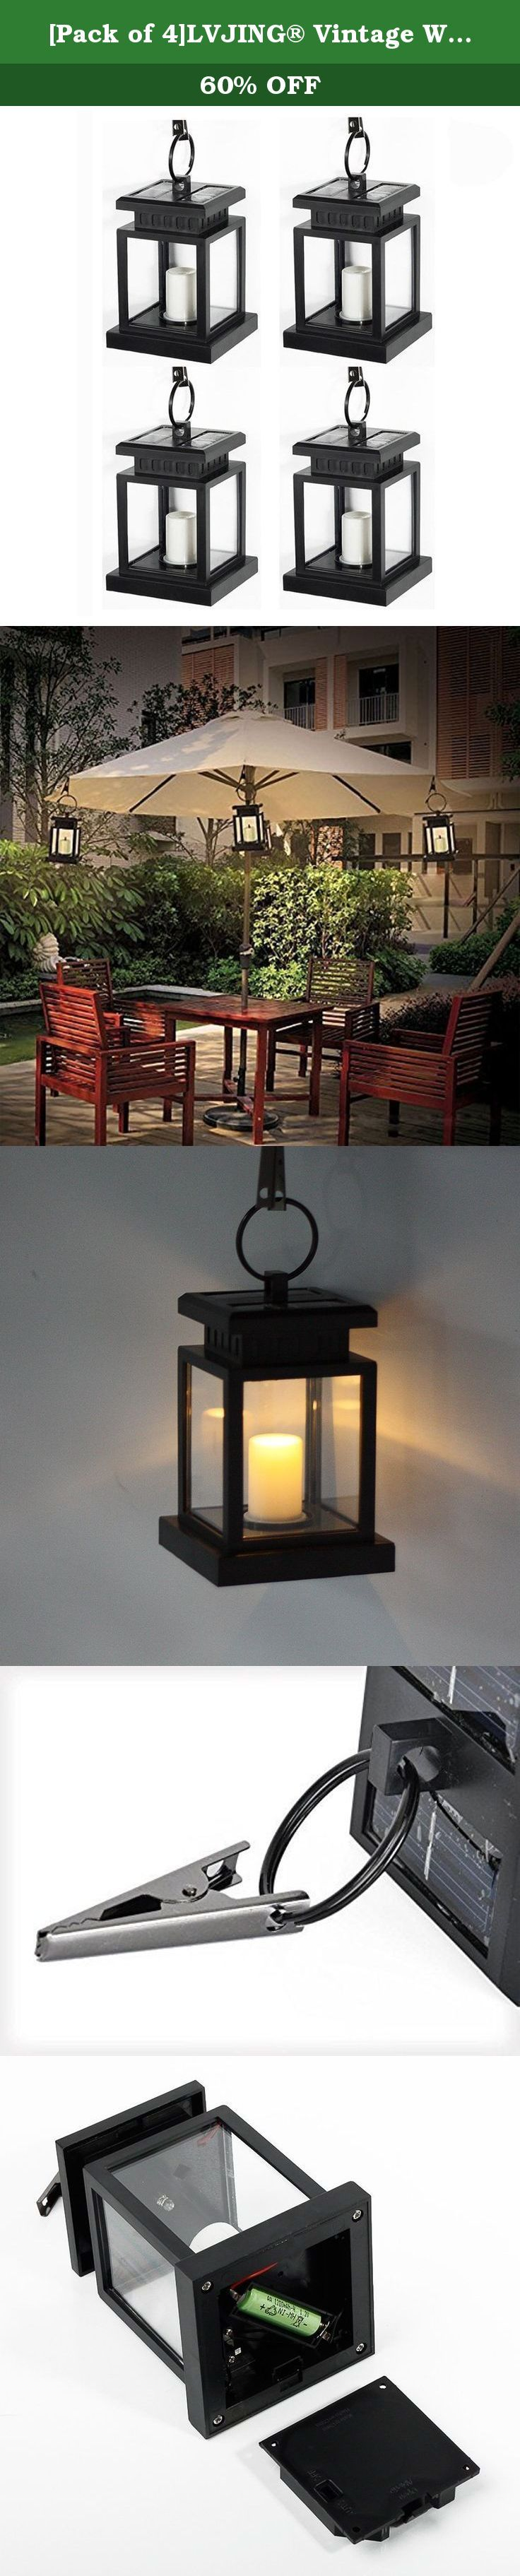 [Pack of 4]LVJING® Vintage Waterproof Solar Powered Hanging Umbrella Lantern Portable Led Candle Lights with Clamp for Beach Umbrella Tree Pavilion Garden Yard Lawn Camping etc. Lighting & Decoration (Black). About our brand LVJING: *** LVJING *** has been a professional LED manufacturer for over 5 years. We aim to provide our customers 100% satisfaction with high quality products, competitive price and good customer service. If for any reason you are not satisfied, please give us a…